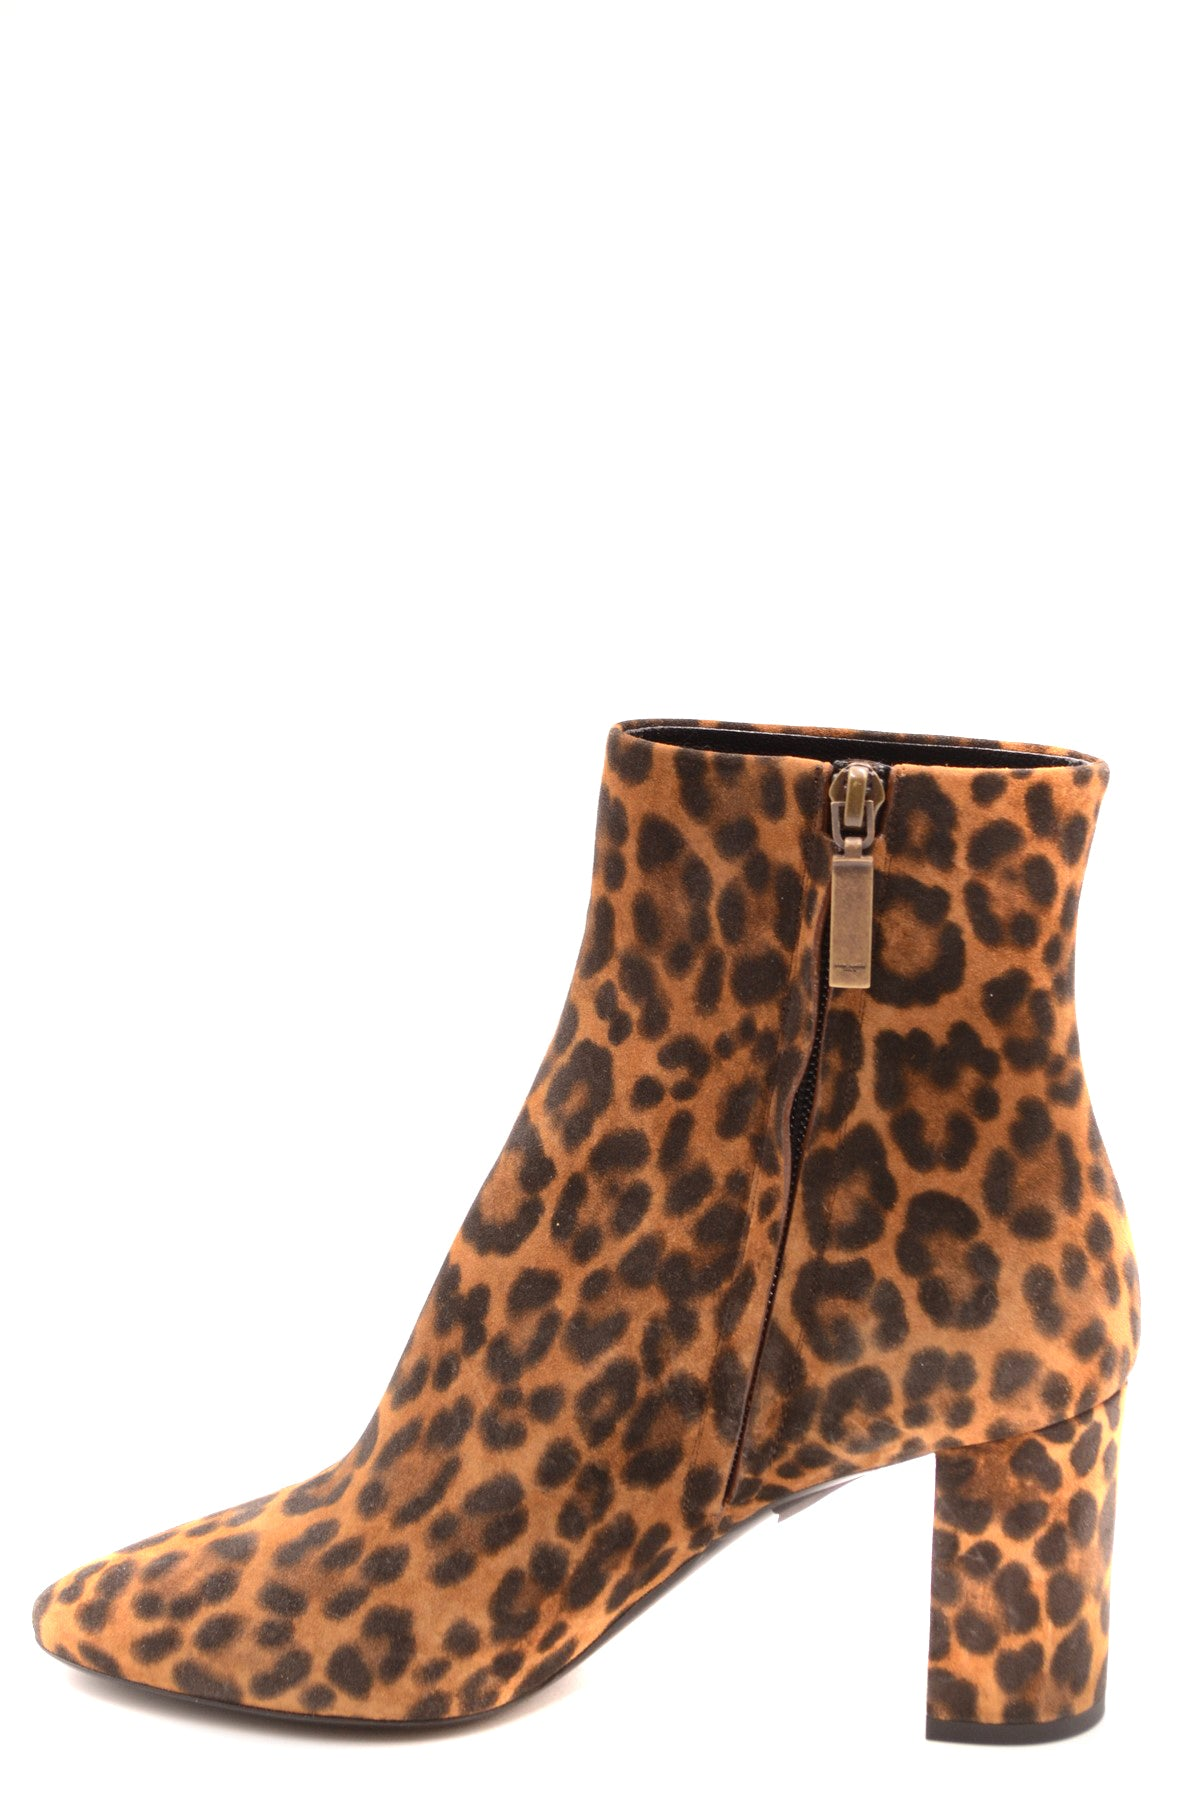 Shoes Saint Laurent-Women's Fashion - Women's Shoes - Women's Boots-Product Details Terms: New With LabelMain Color: MulticolorType Of Accessory: BootsSeason: Fall / WinterMade In: ItalyGender: WomanHeel'S Height: 7Size: EuComposition: Chamois 100%Year: 2019Manufacturer Part Number: 586501 1Fl00 2198-Keyomi-Sook